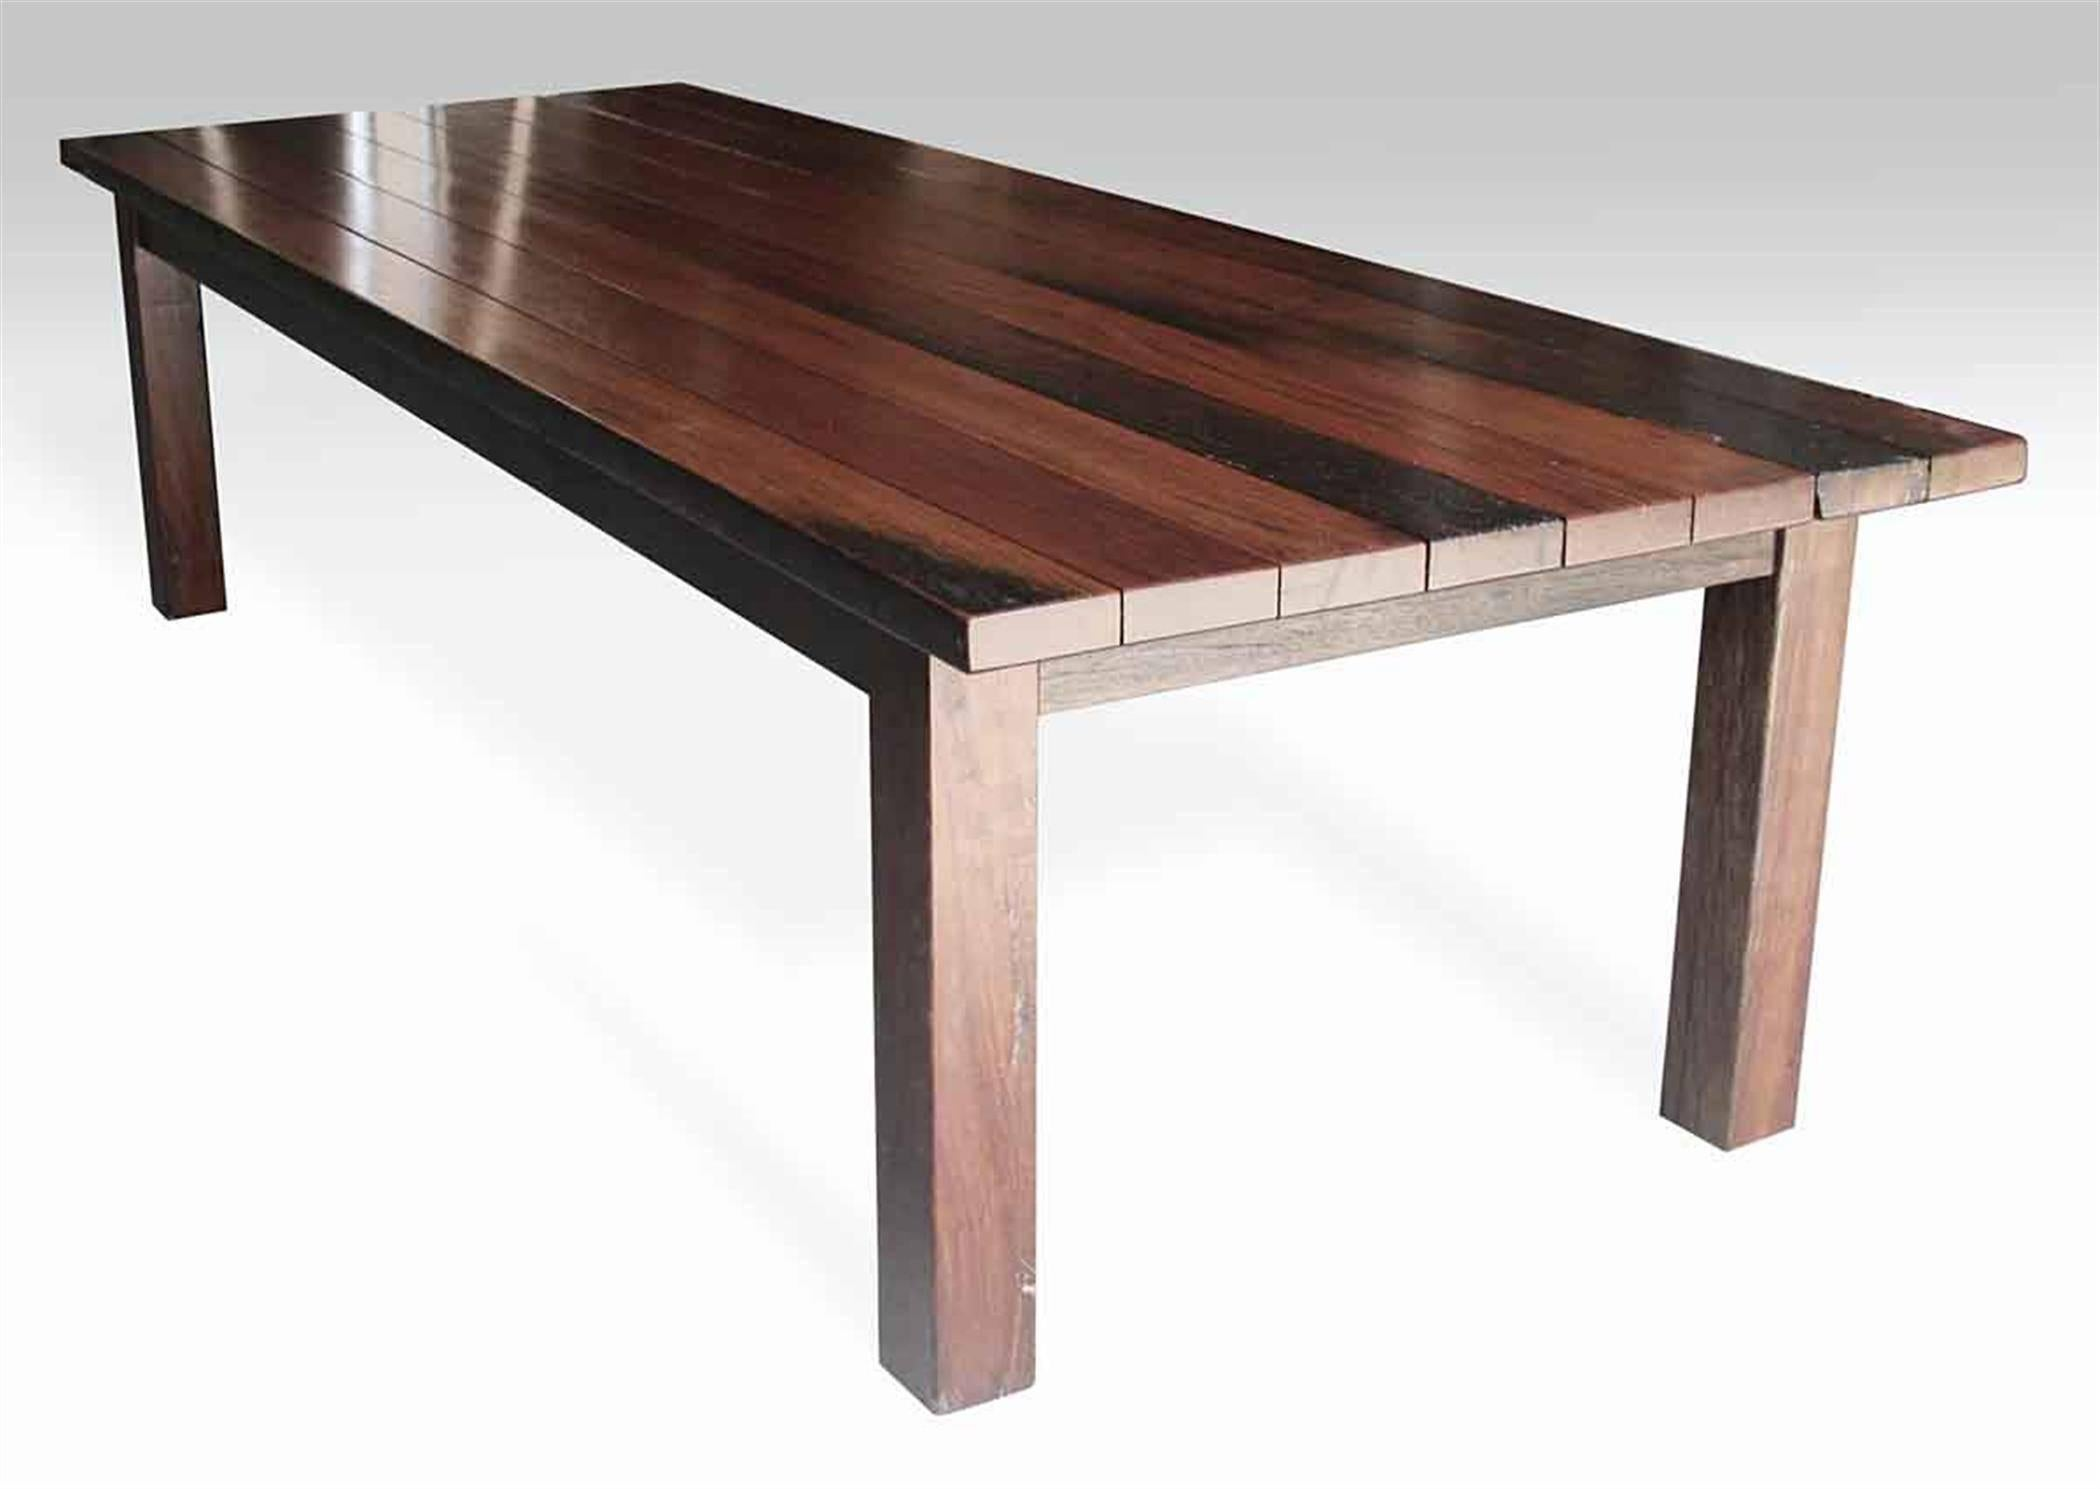 Rustic Ipe Wood Decking Plank Farm Table With Square Legs From The South  Street Seaport For